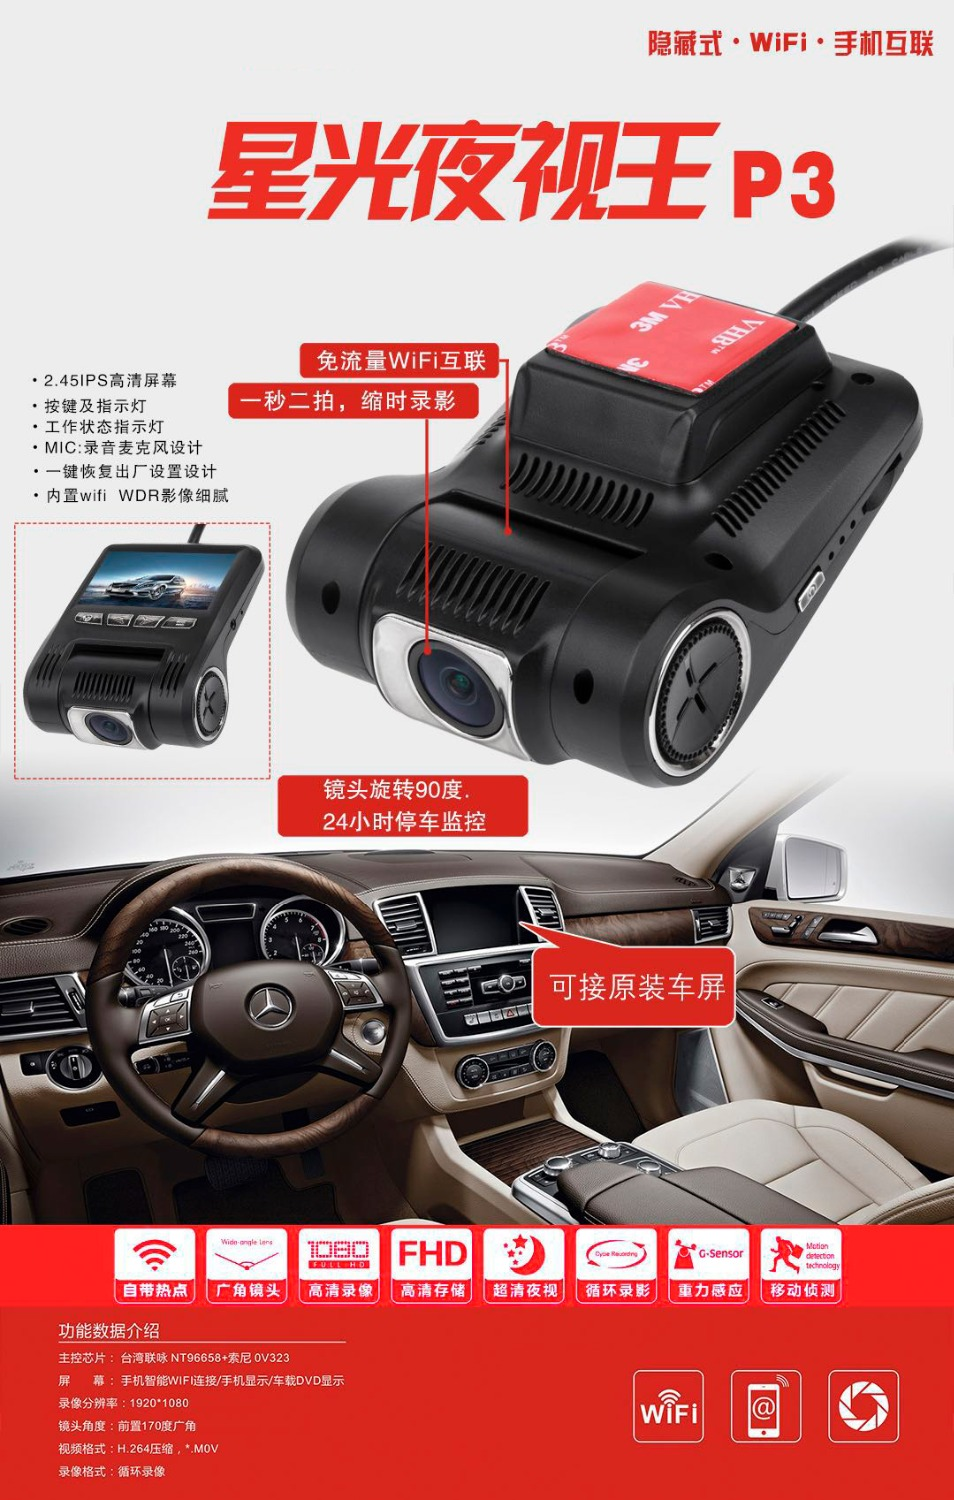 1080P Motion Detection Starlight Night Vision G sensor 24h Parking Monitor WIFI Video Recorder HD Car DVR Camera for Android DVD